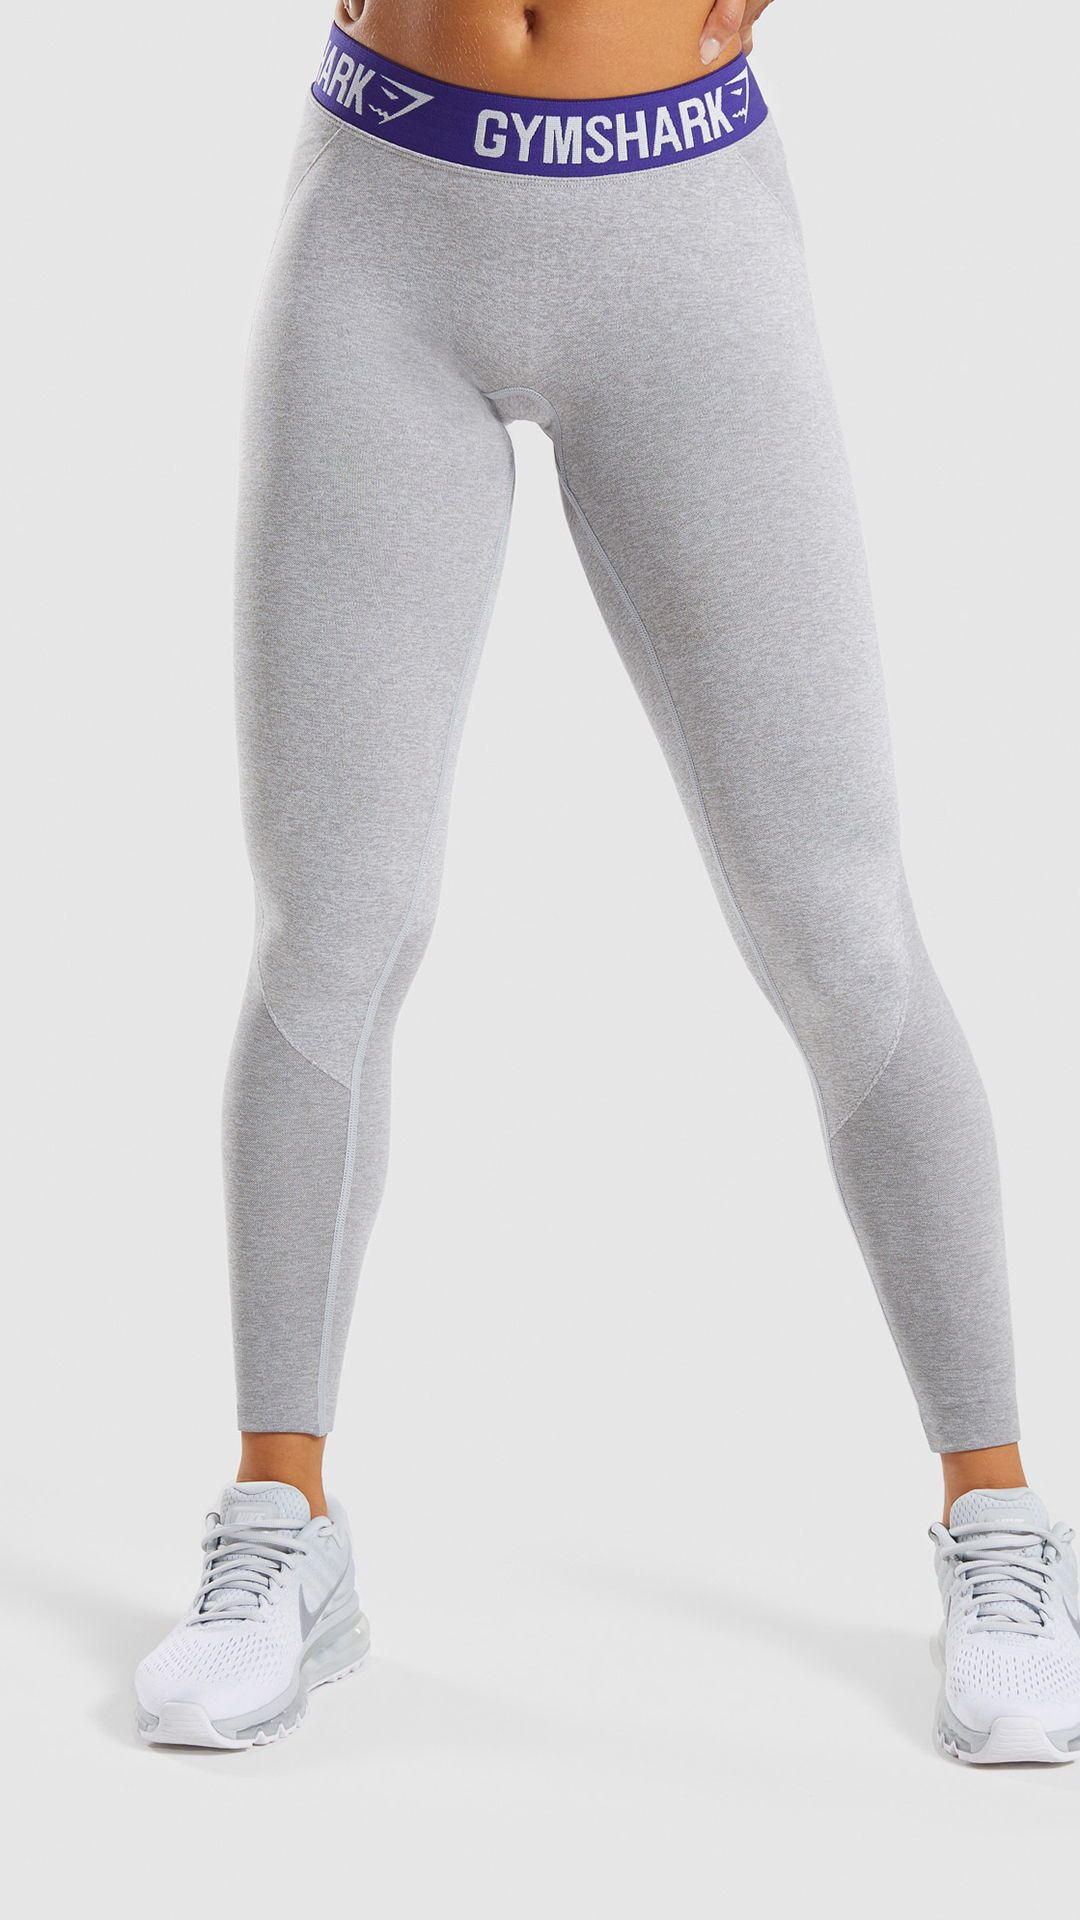 334380b0b6872 The Gymshark Flex Leggings, Light Grey Marl/ Indigo. Combining our  signature seamless knit with superior, sculpting design. #Gymshark #Gym  #Sweat #Train ...